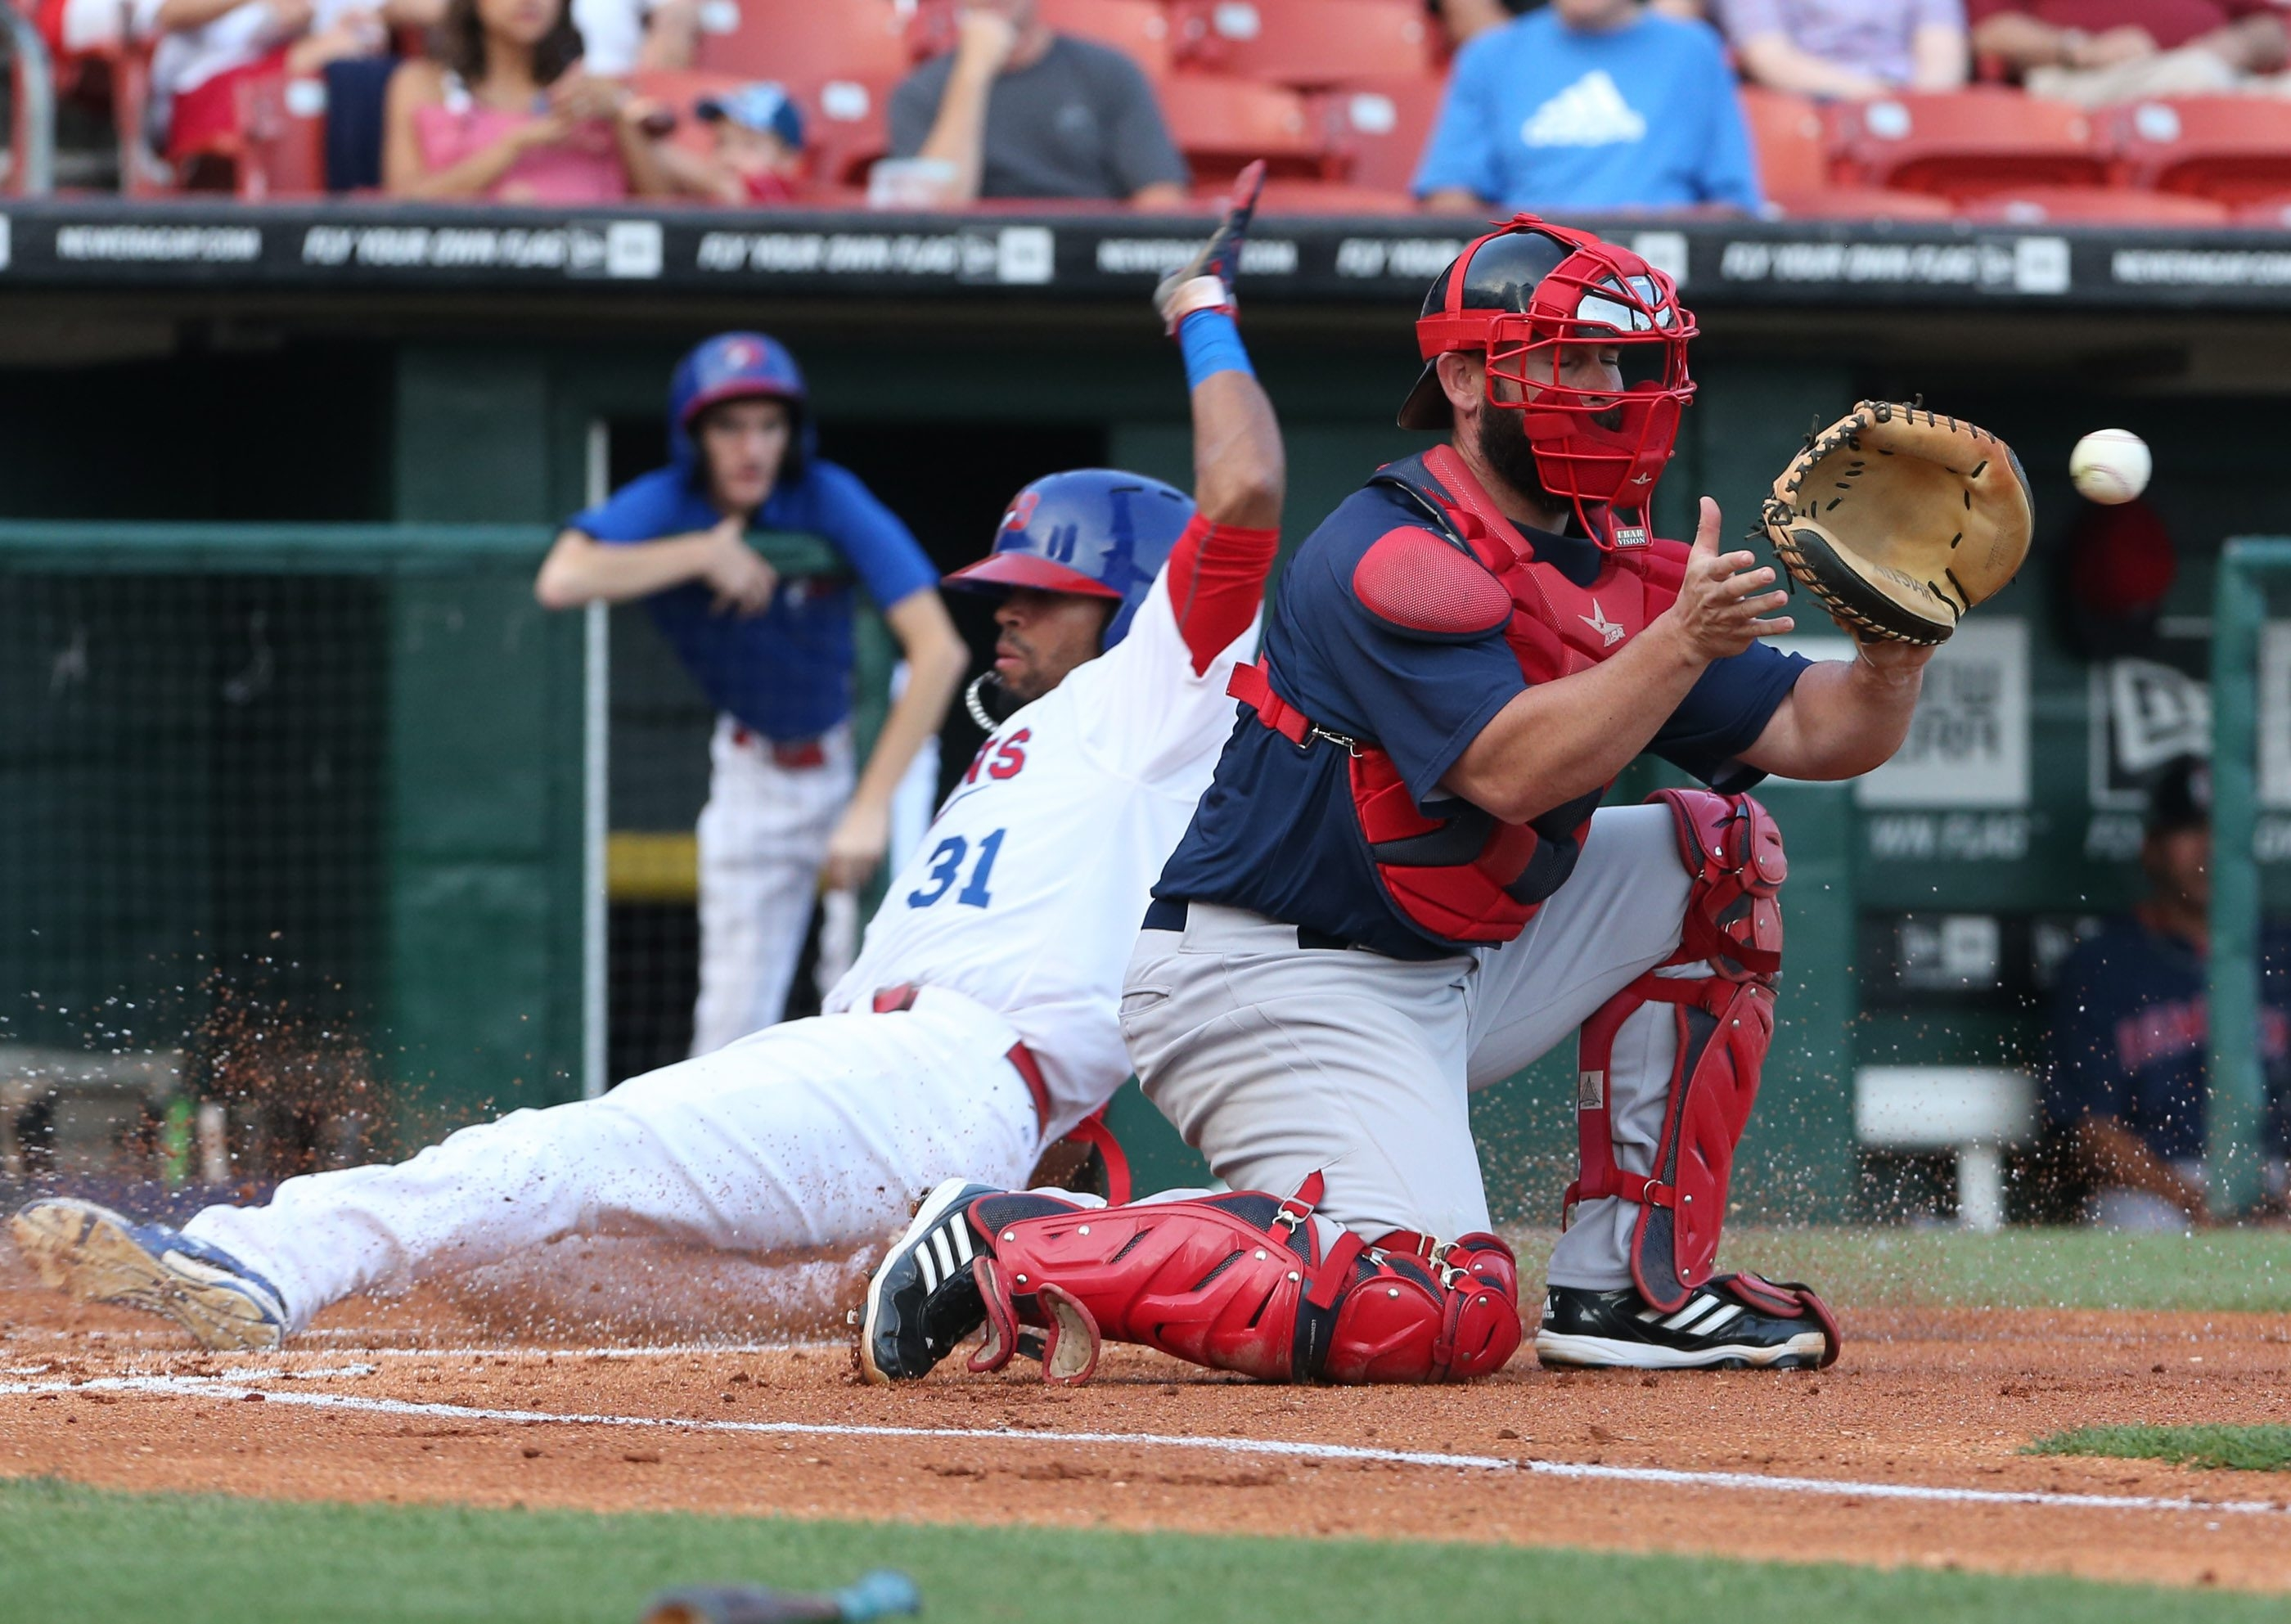 one lien cut Buffalo Bisons Dalton Pompey slides across home plate for a run in front of Red Sox catcher Dan Butler in the first inning at Coca-Cola Field in Buffalo,NY on Tuesday, Aug. 26, 2014.  ()